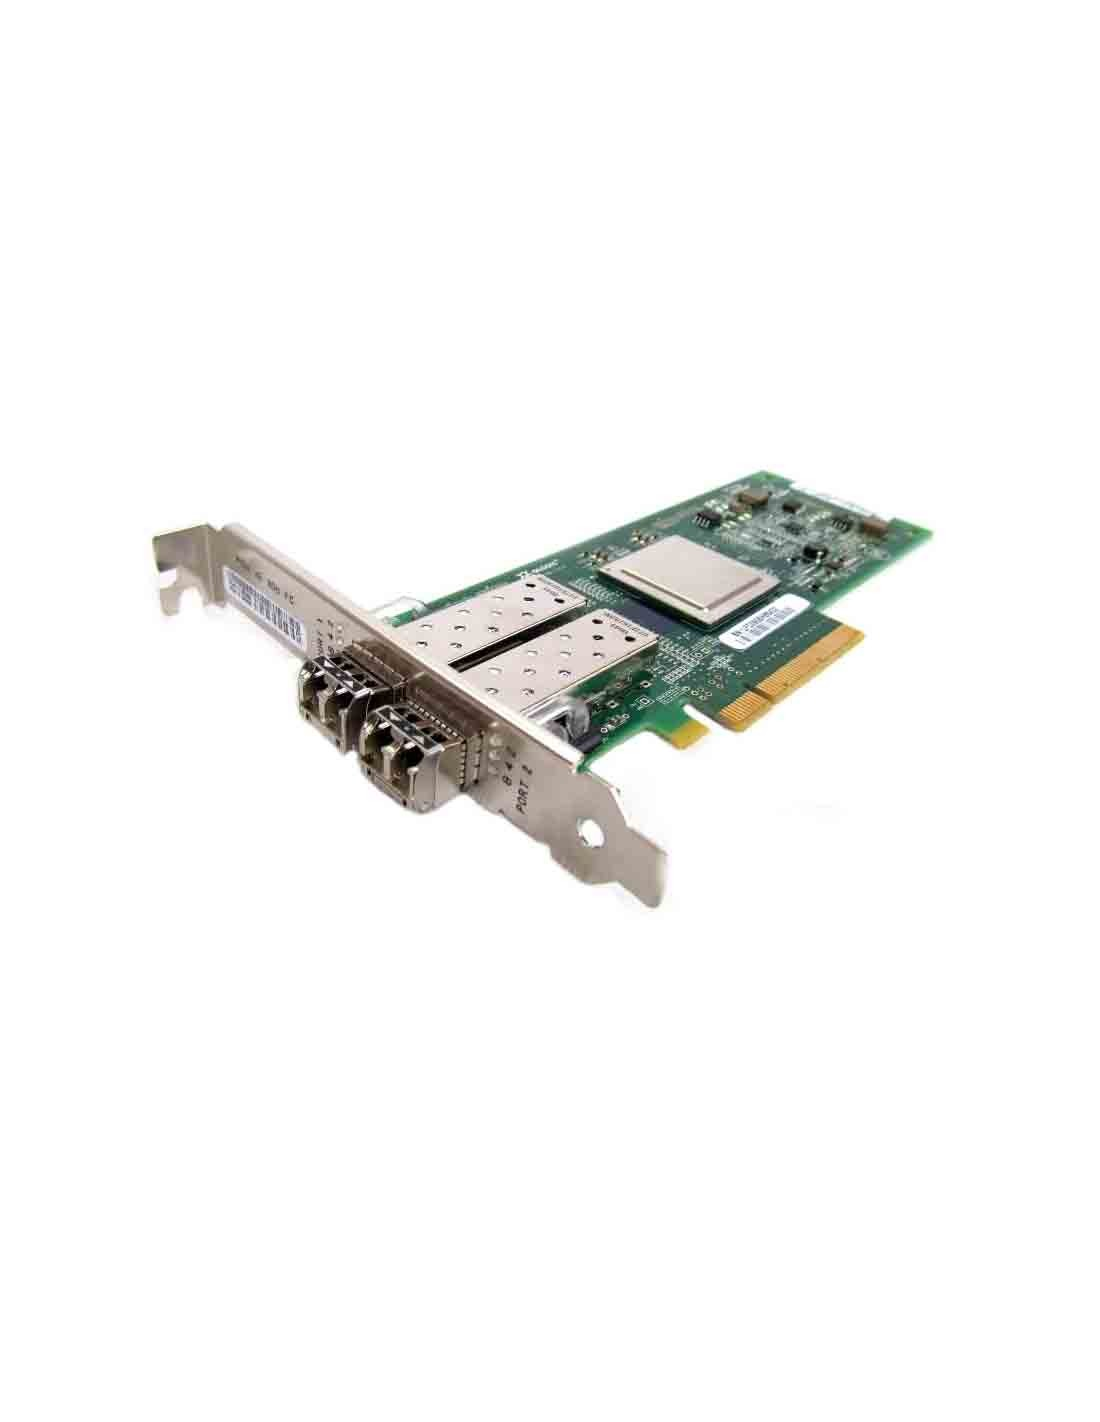 Dell QLogic 2562 Dual Port 8GB Fibre Channel Host Bus Adapter at a cheap price in UAE